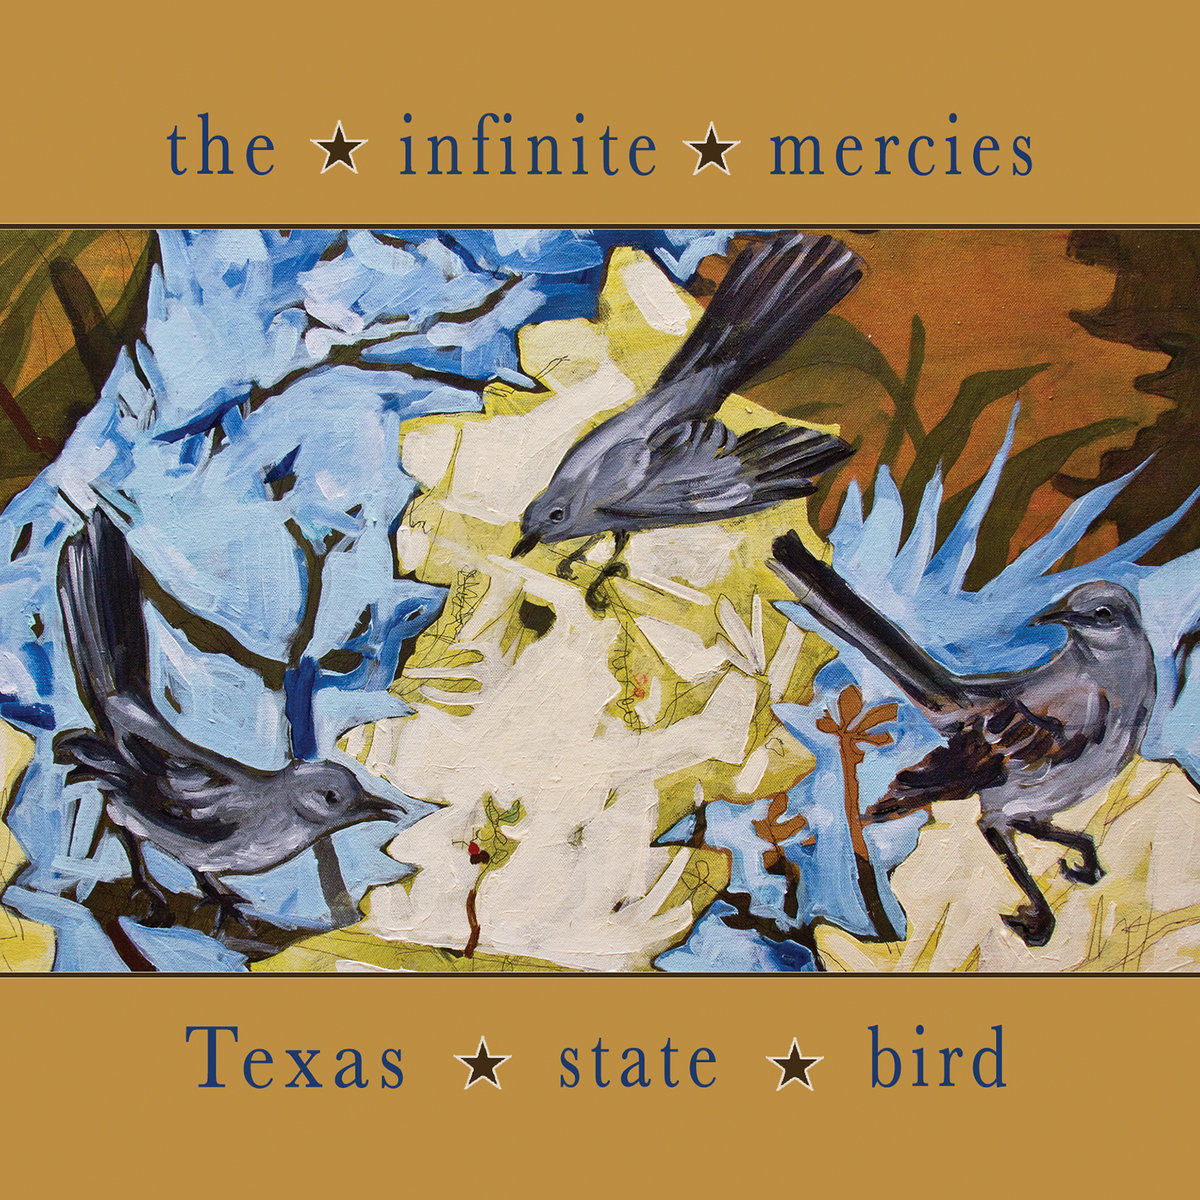 texas state bird by the infinite mercies